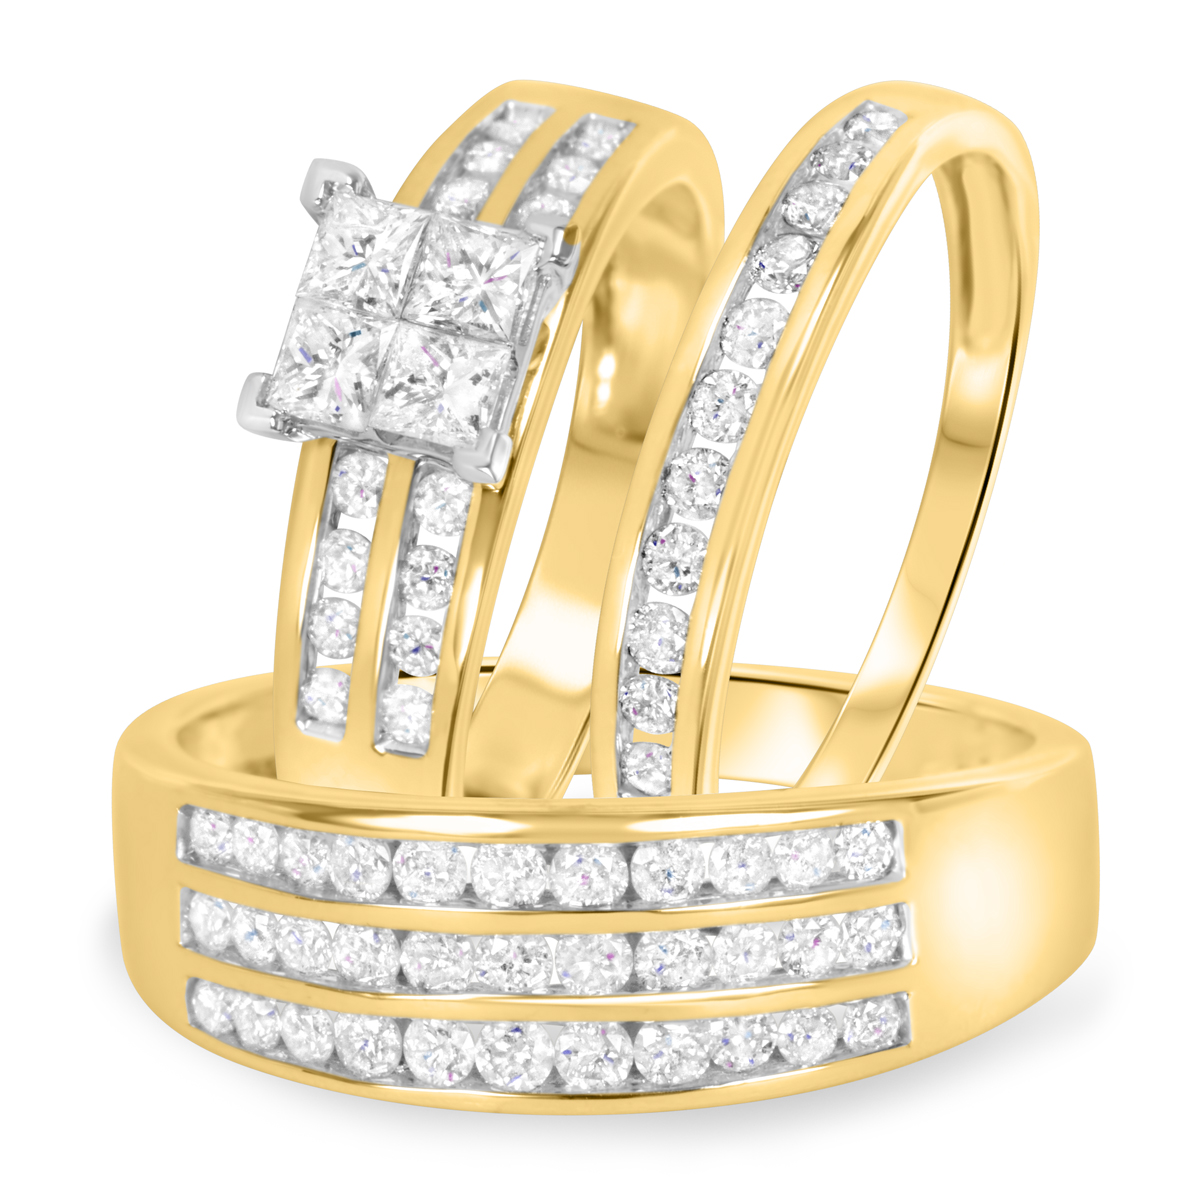 walmart wedding rings his and hers wedding ring sale Wedding Bands For Sale Download